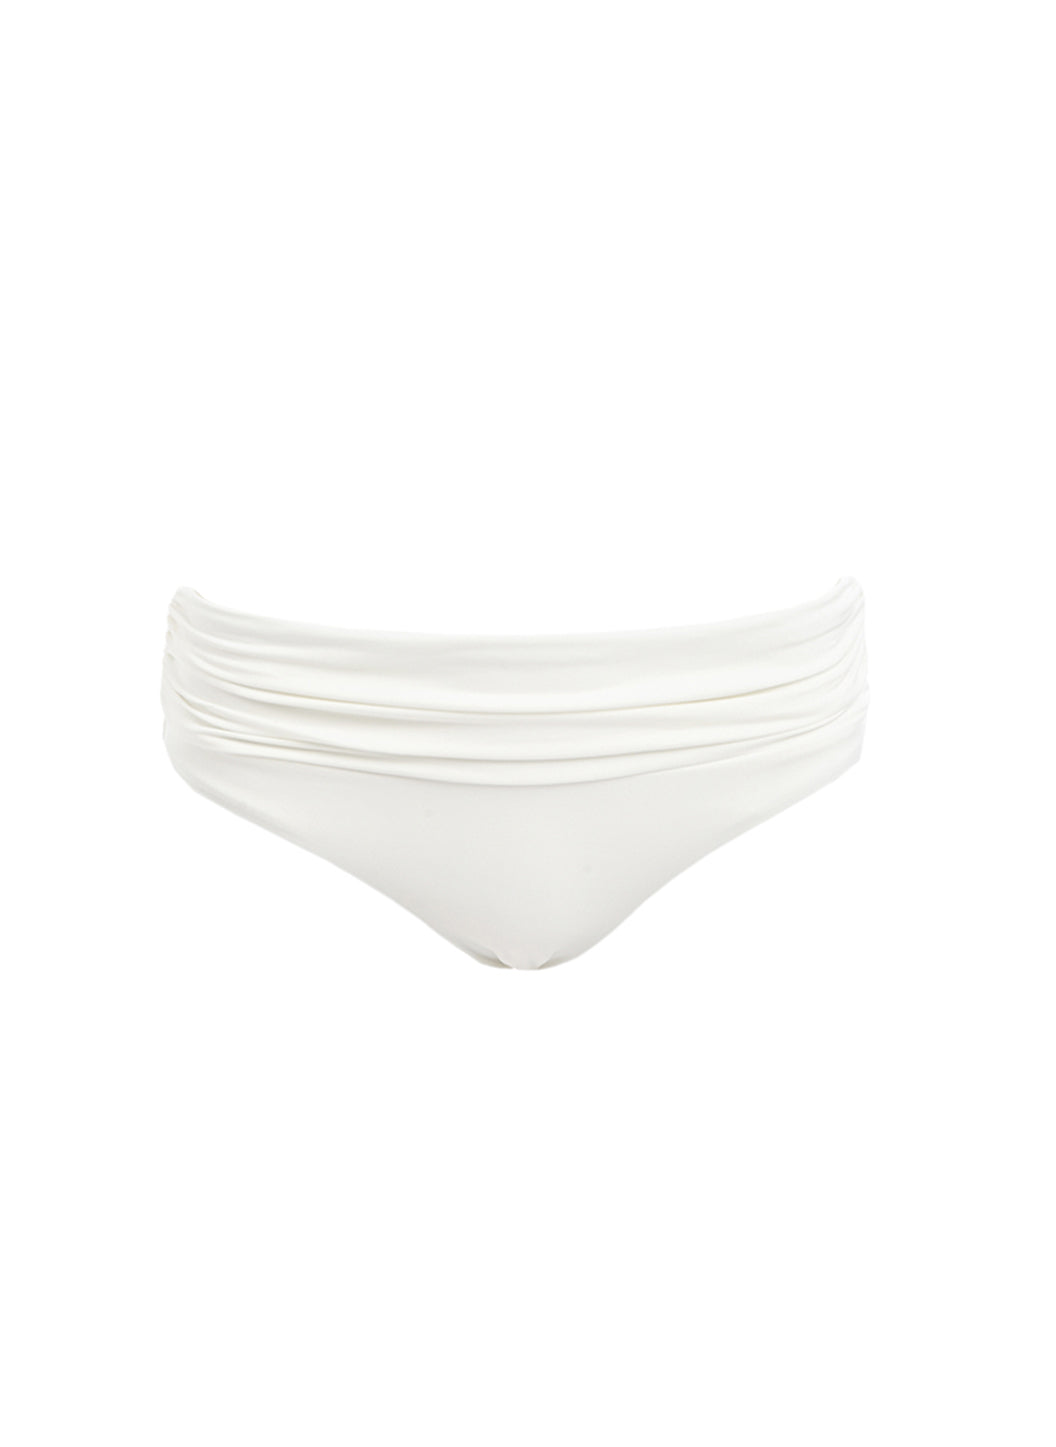 Belair Cream Over The Shoulder Supportive Bikini Bottom